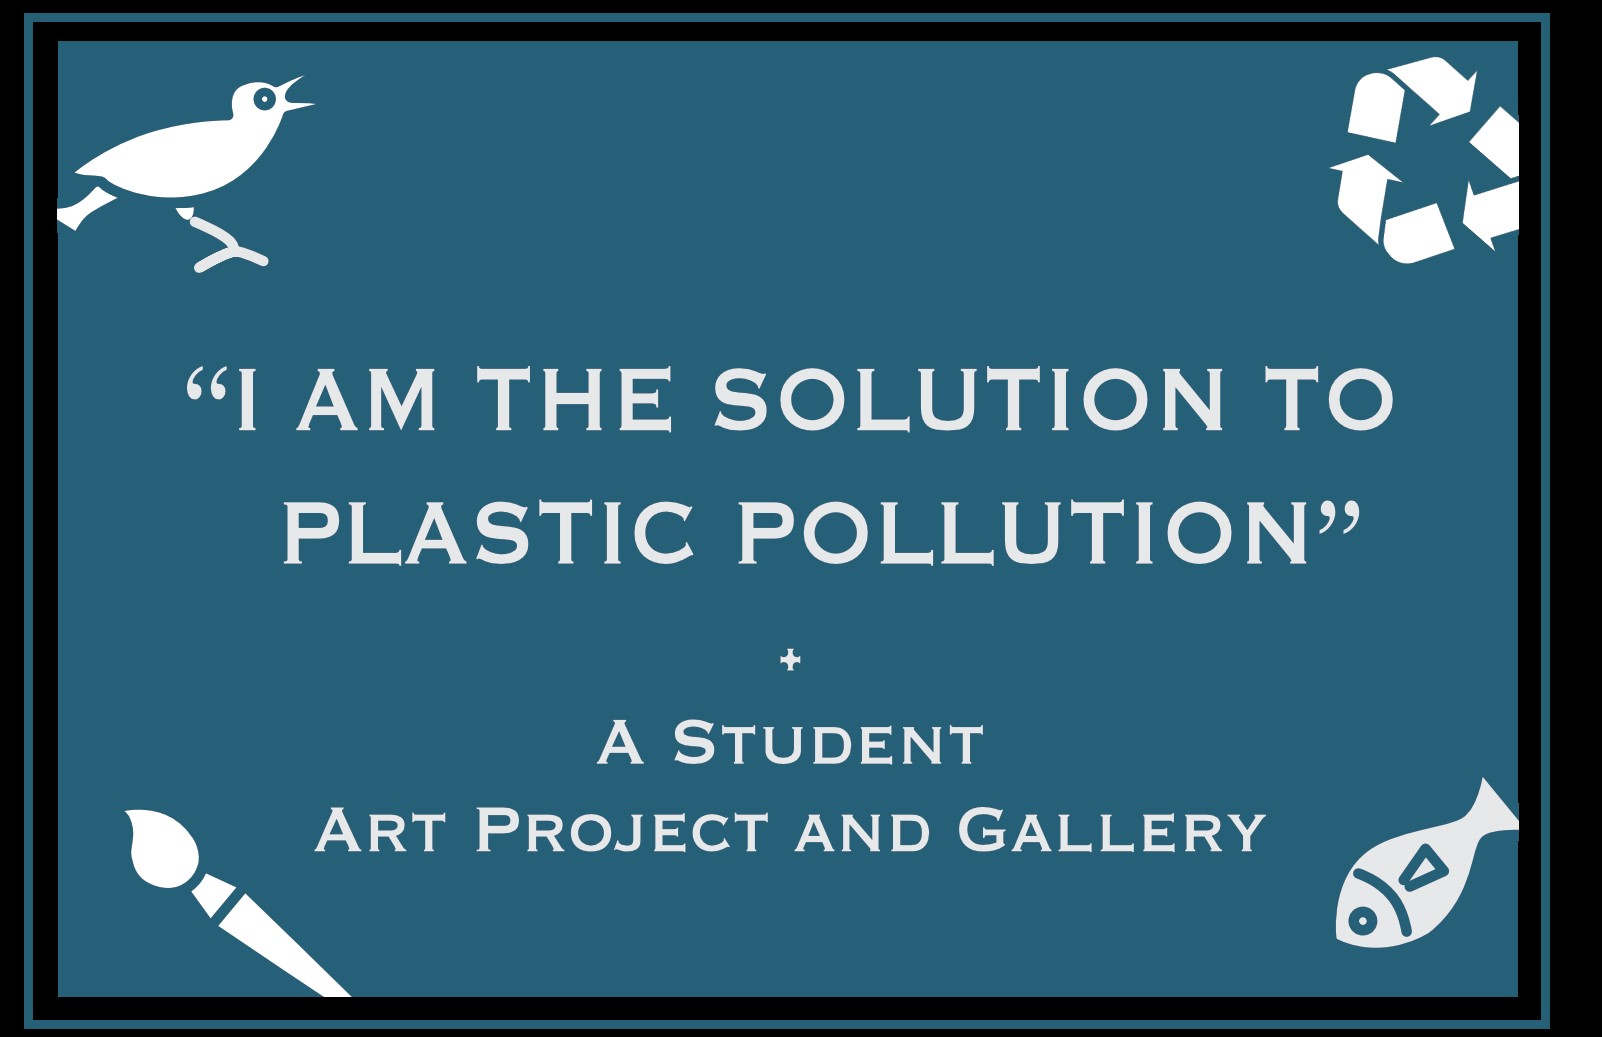 I Am The Solution to Plastic Pollution